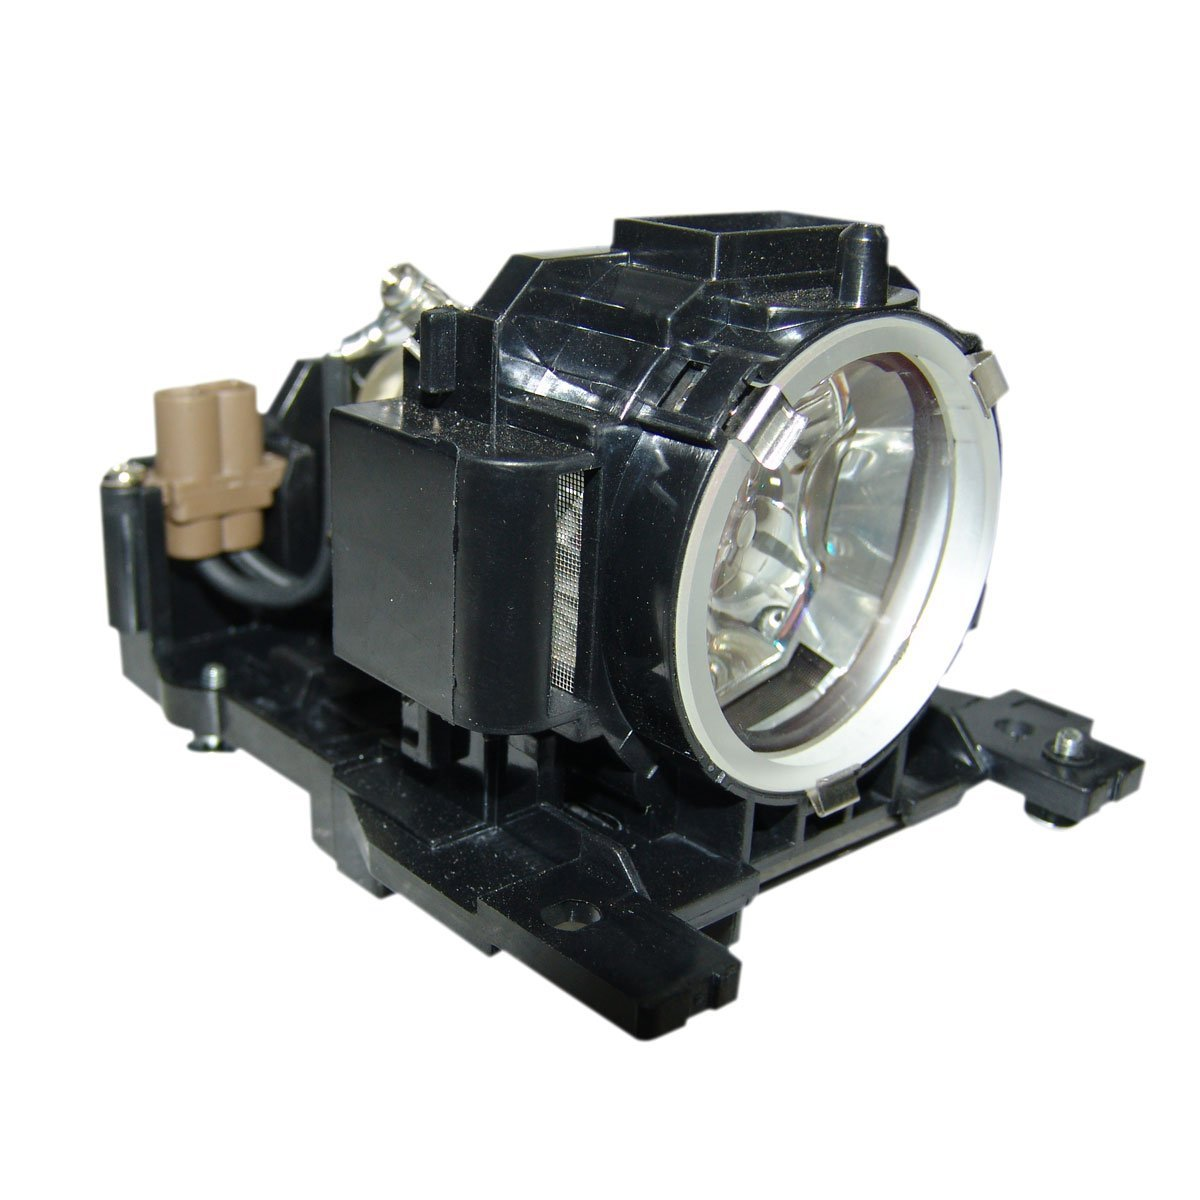 DT00893 DT-00893 for HITACHI CP-A52 A52 ED-A101 A101 ED-A111 A111 CP-A200 A200 Projector Lamp Bulb With Housing<br>